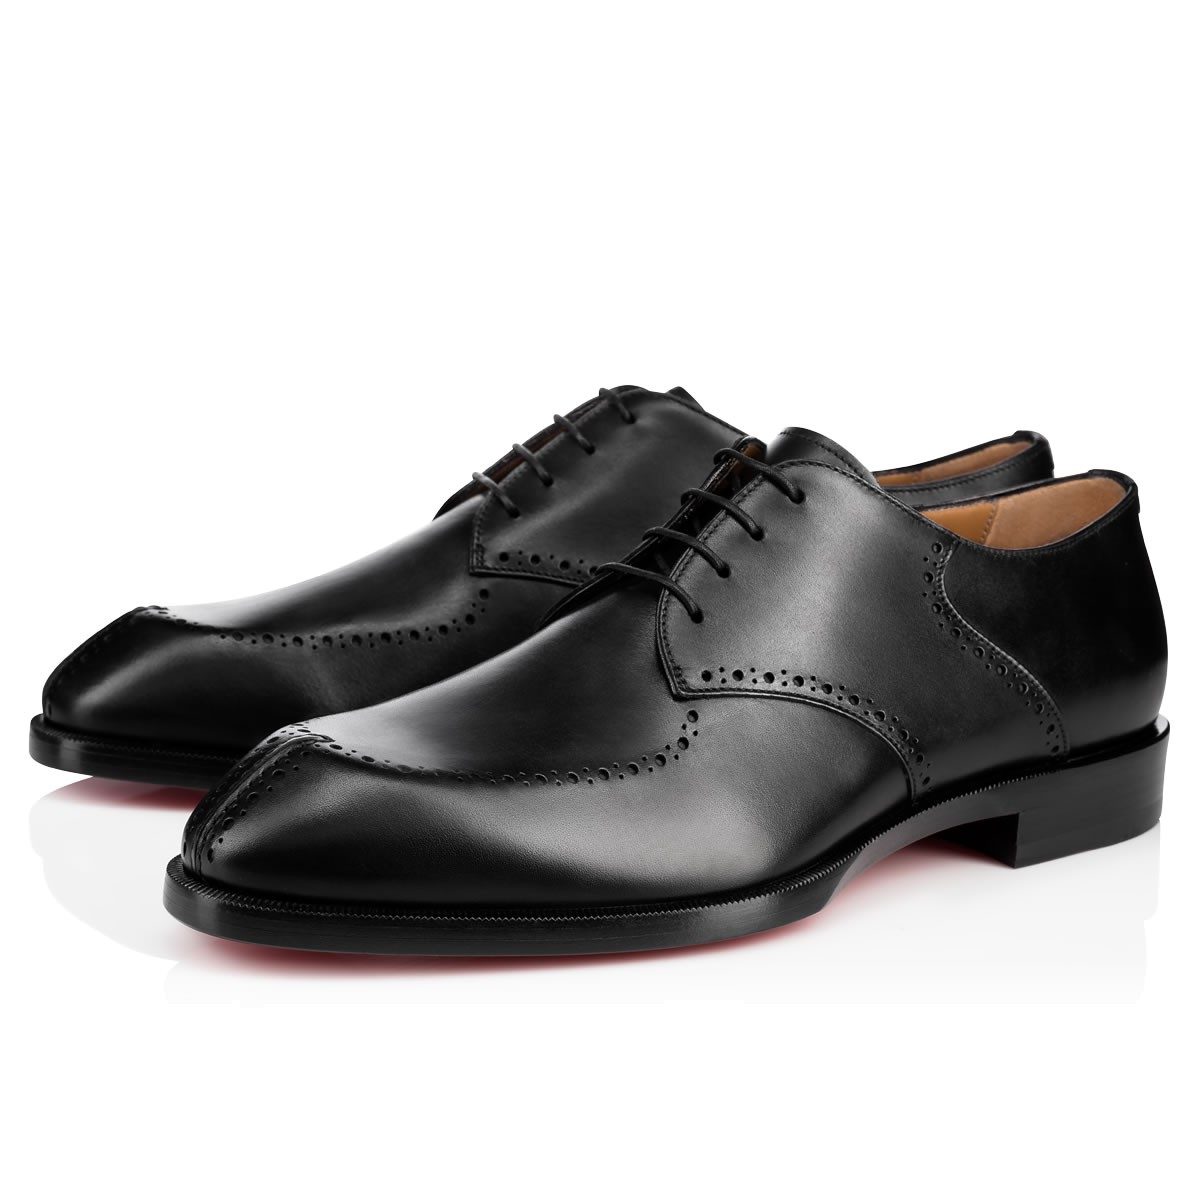 Men Shoes - A Mon Homme Flat - Christian Louboutin